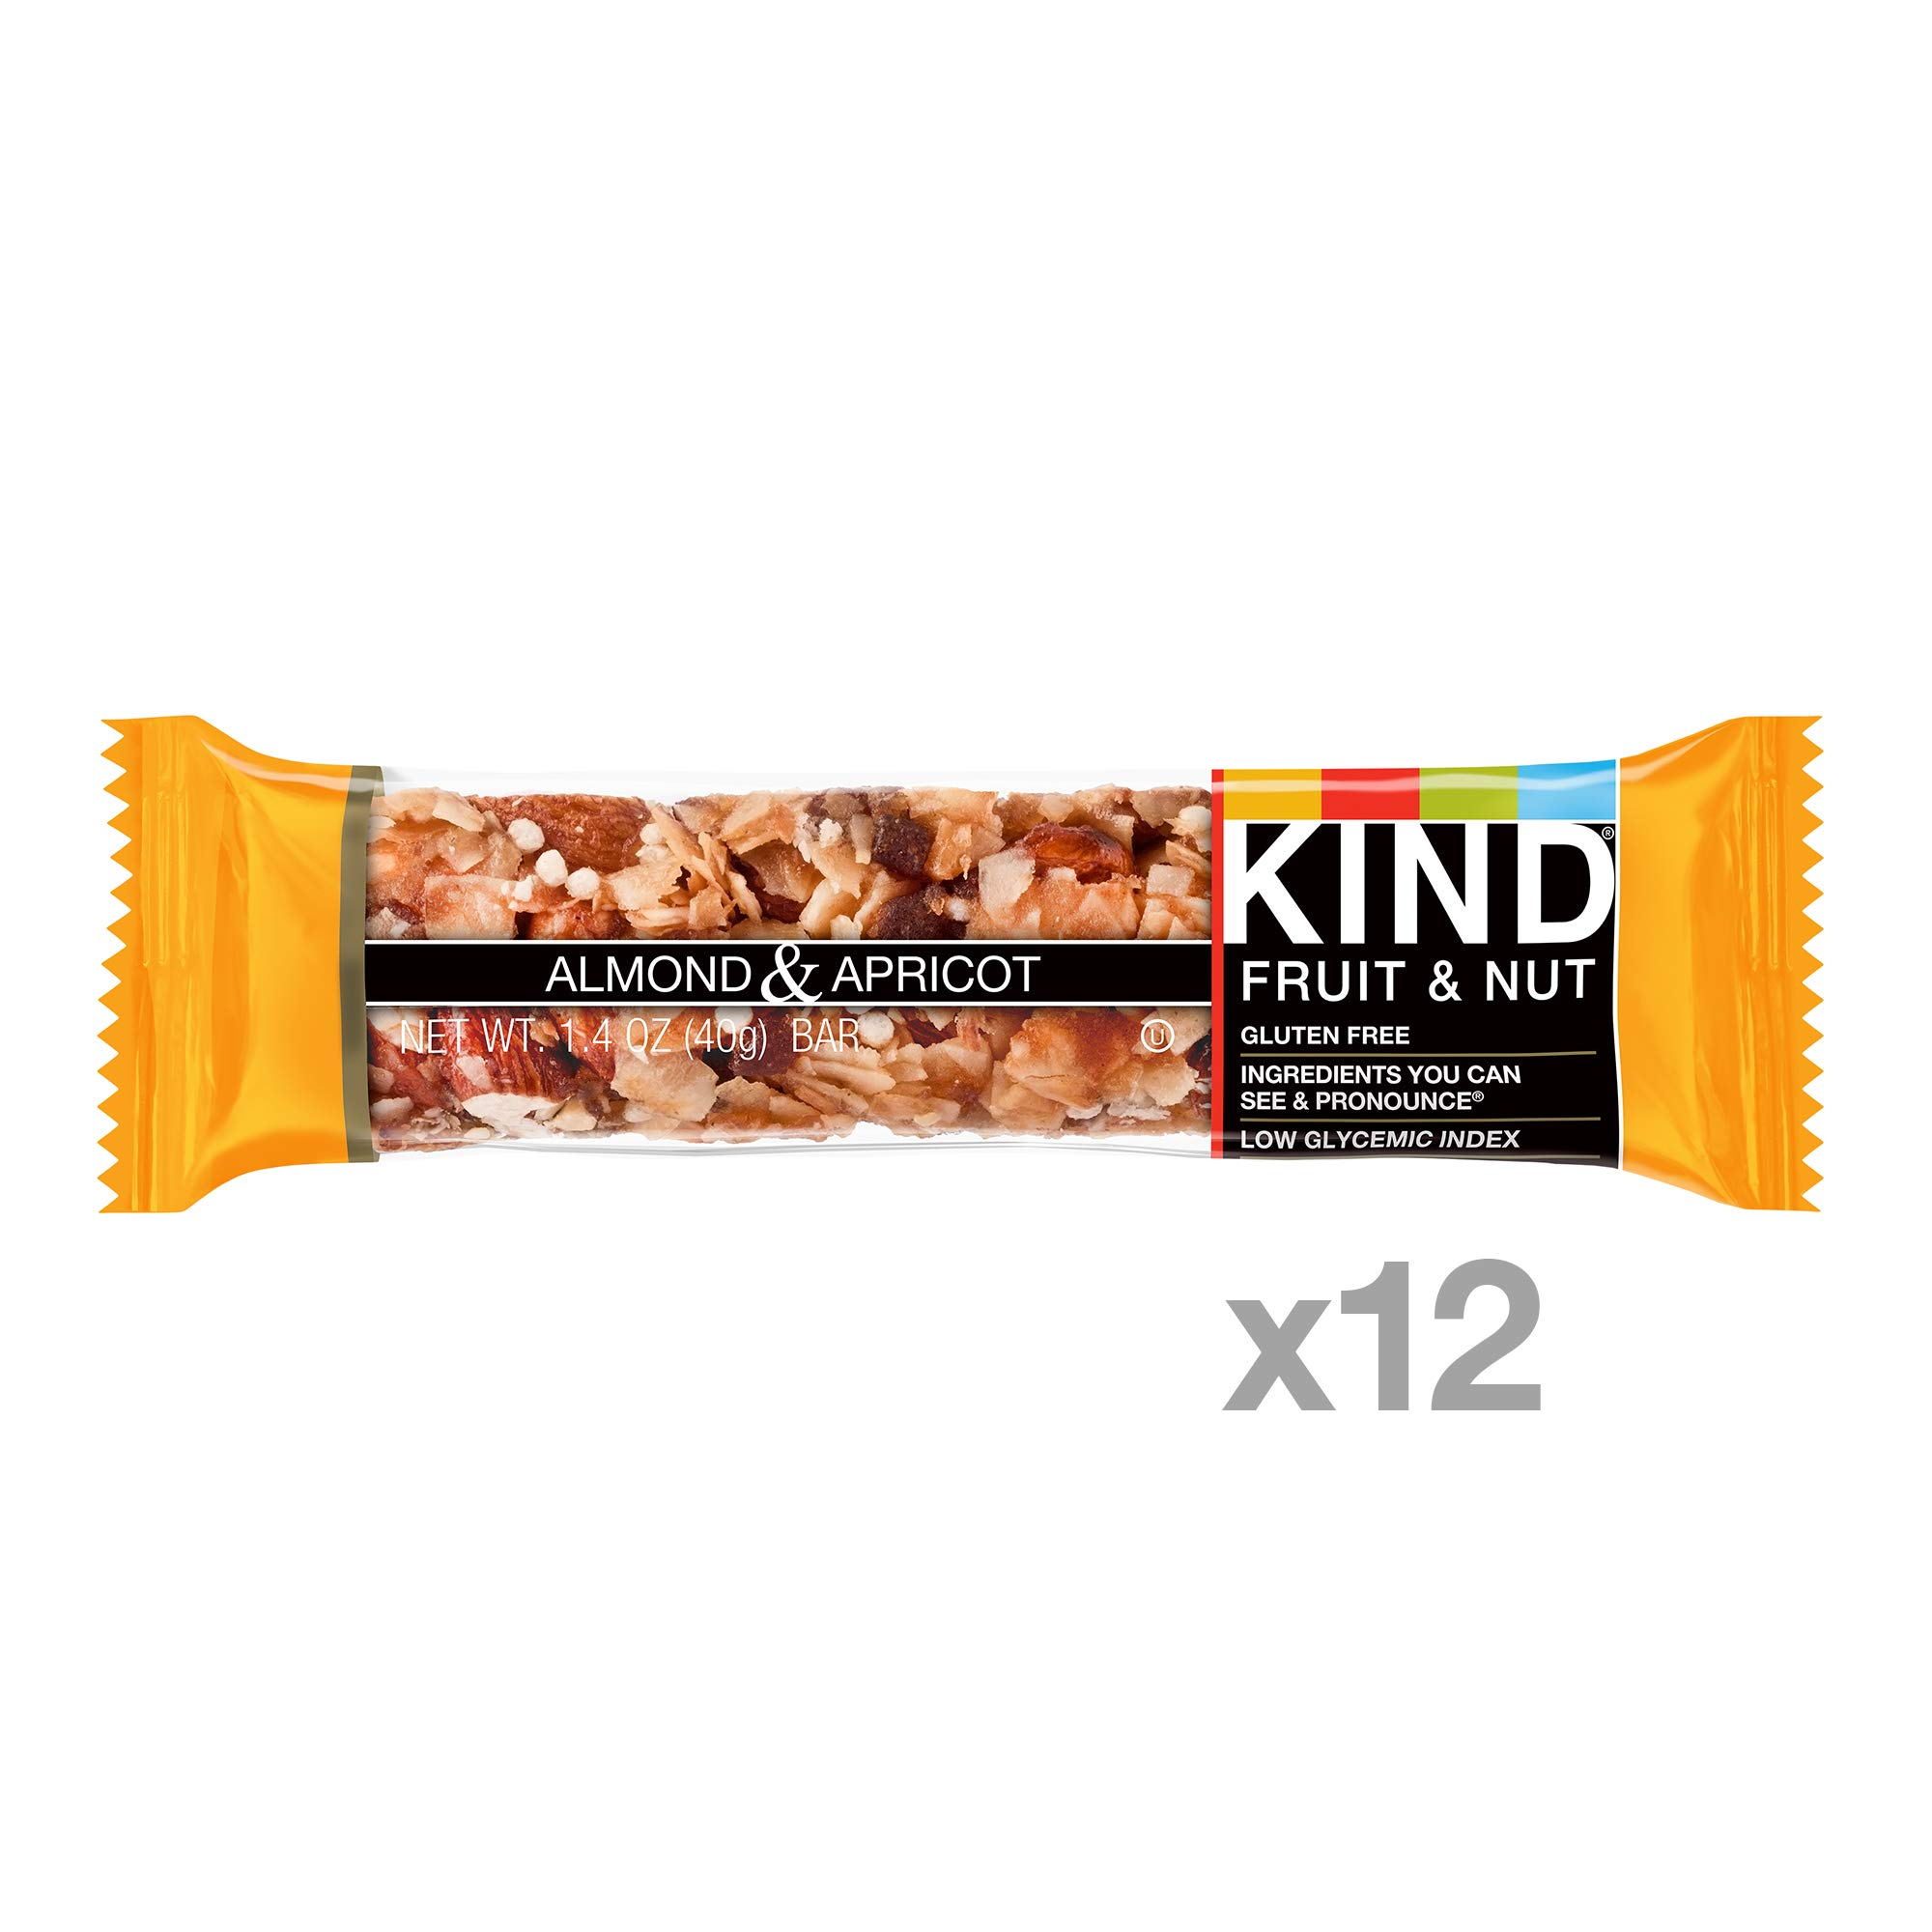 KIND Bars, Almond & Apricot, Gluten Free, Low Sugar, 1.4oz, 12 Count by KIND (Image #2)